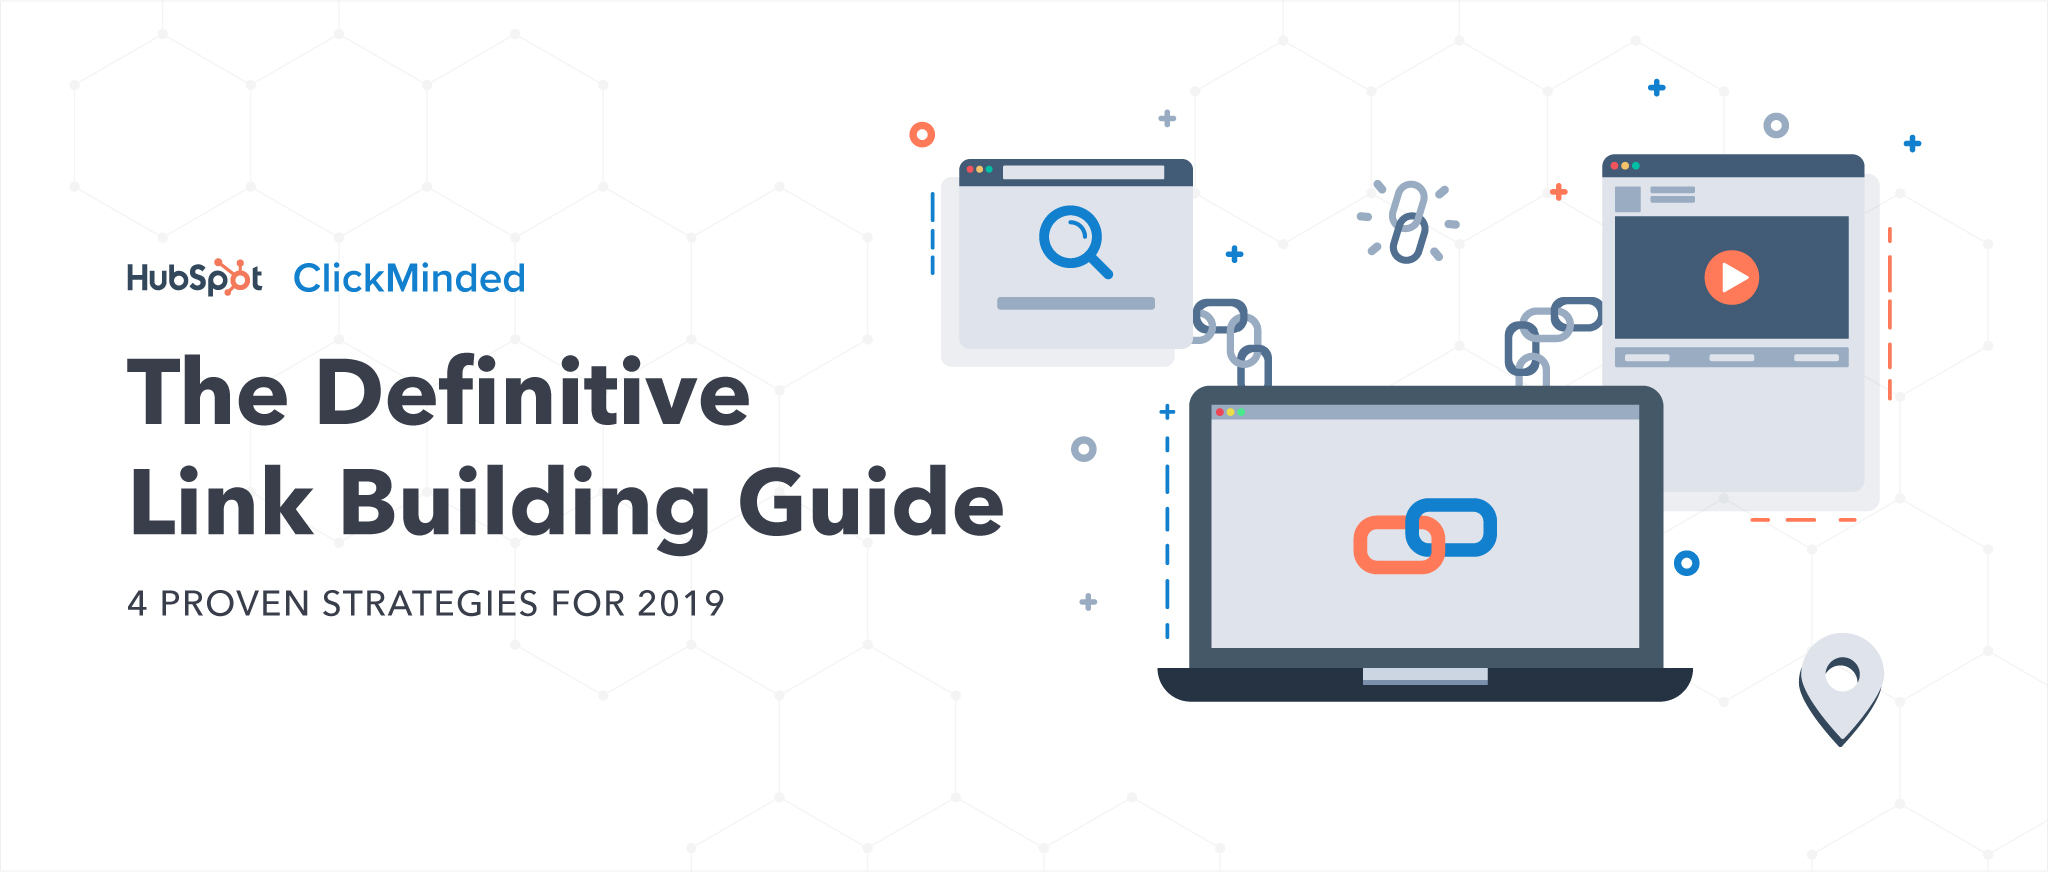 The Definitive Link Building Guide